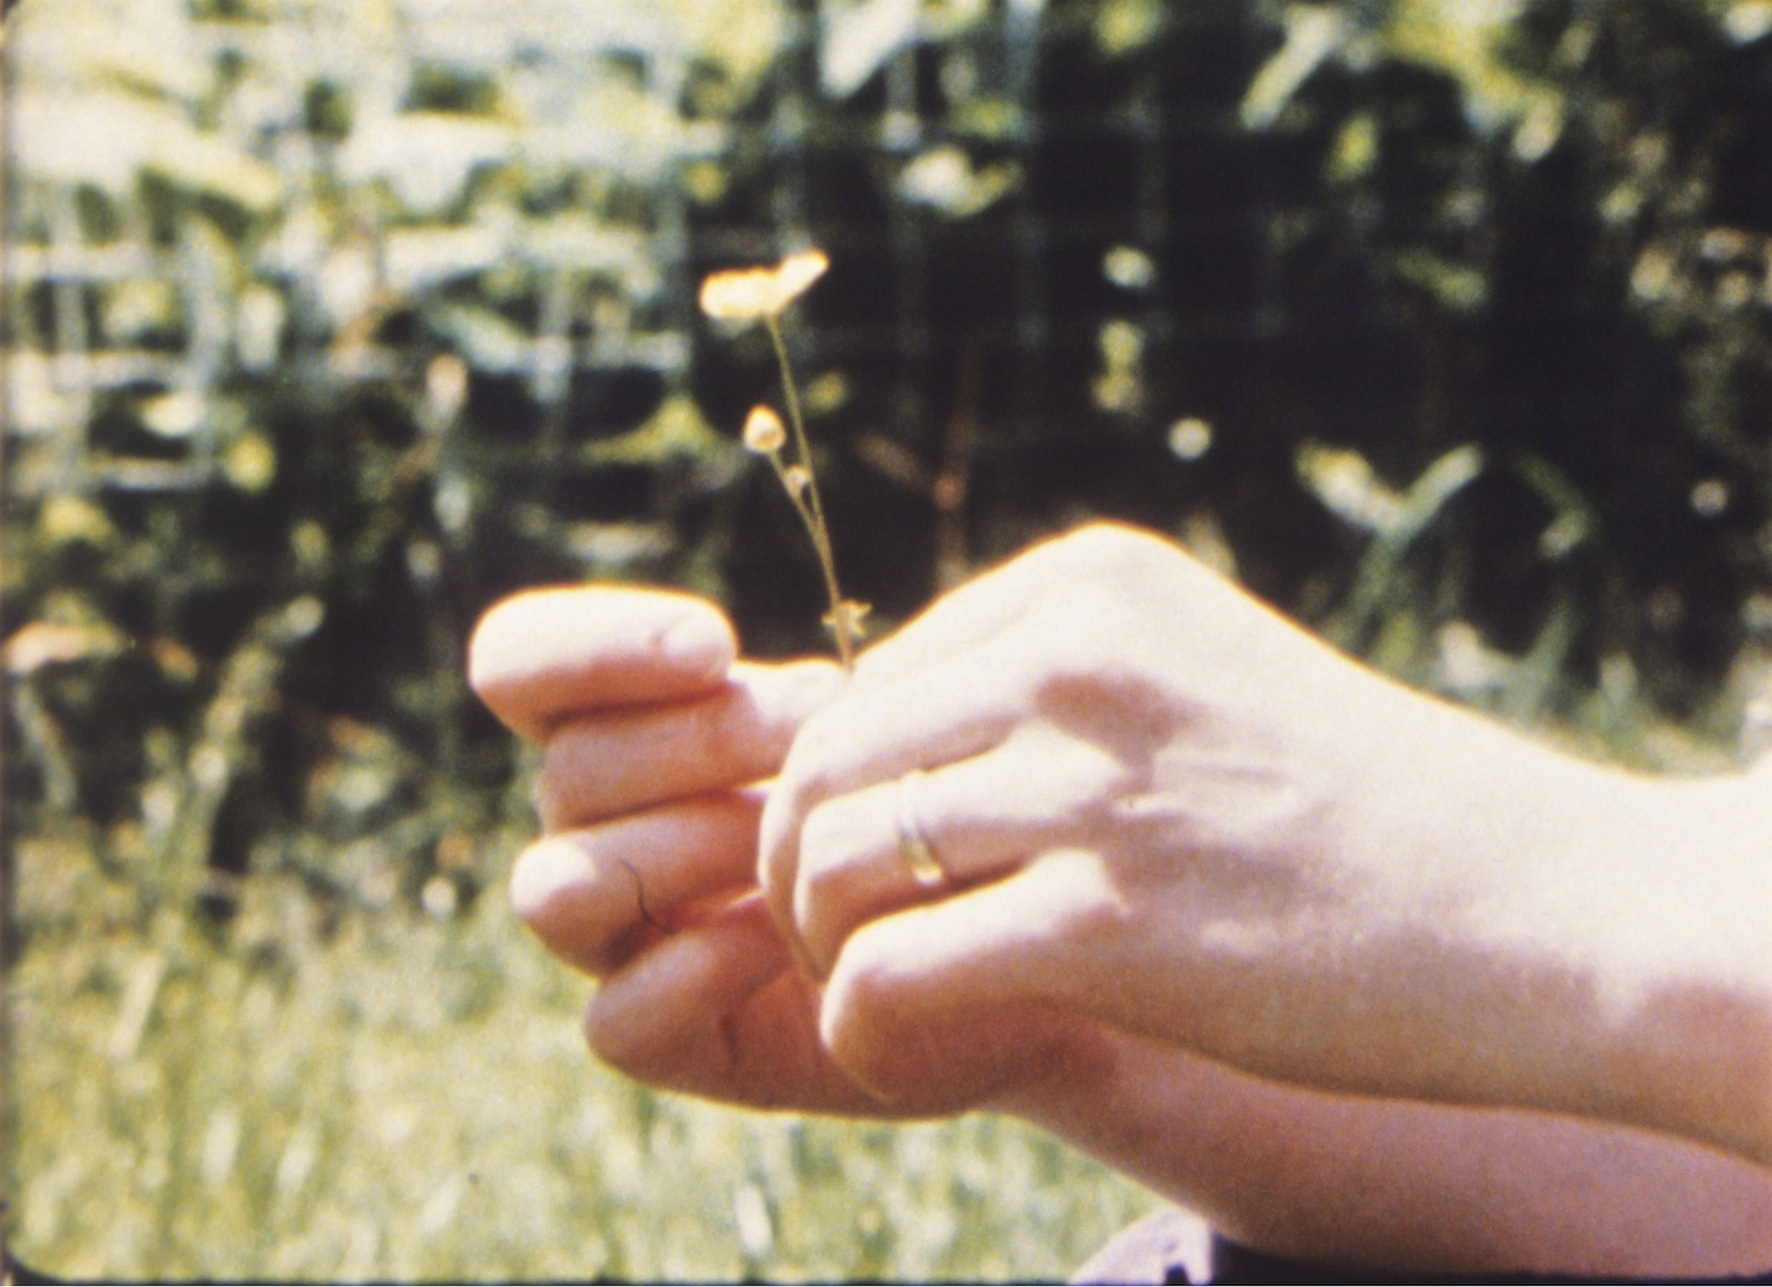 Jonas Mekas »As I was moving ahead occasionally I saw brief glimpses of beauty« (filmstill) , 2000